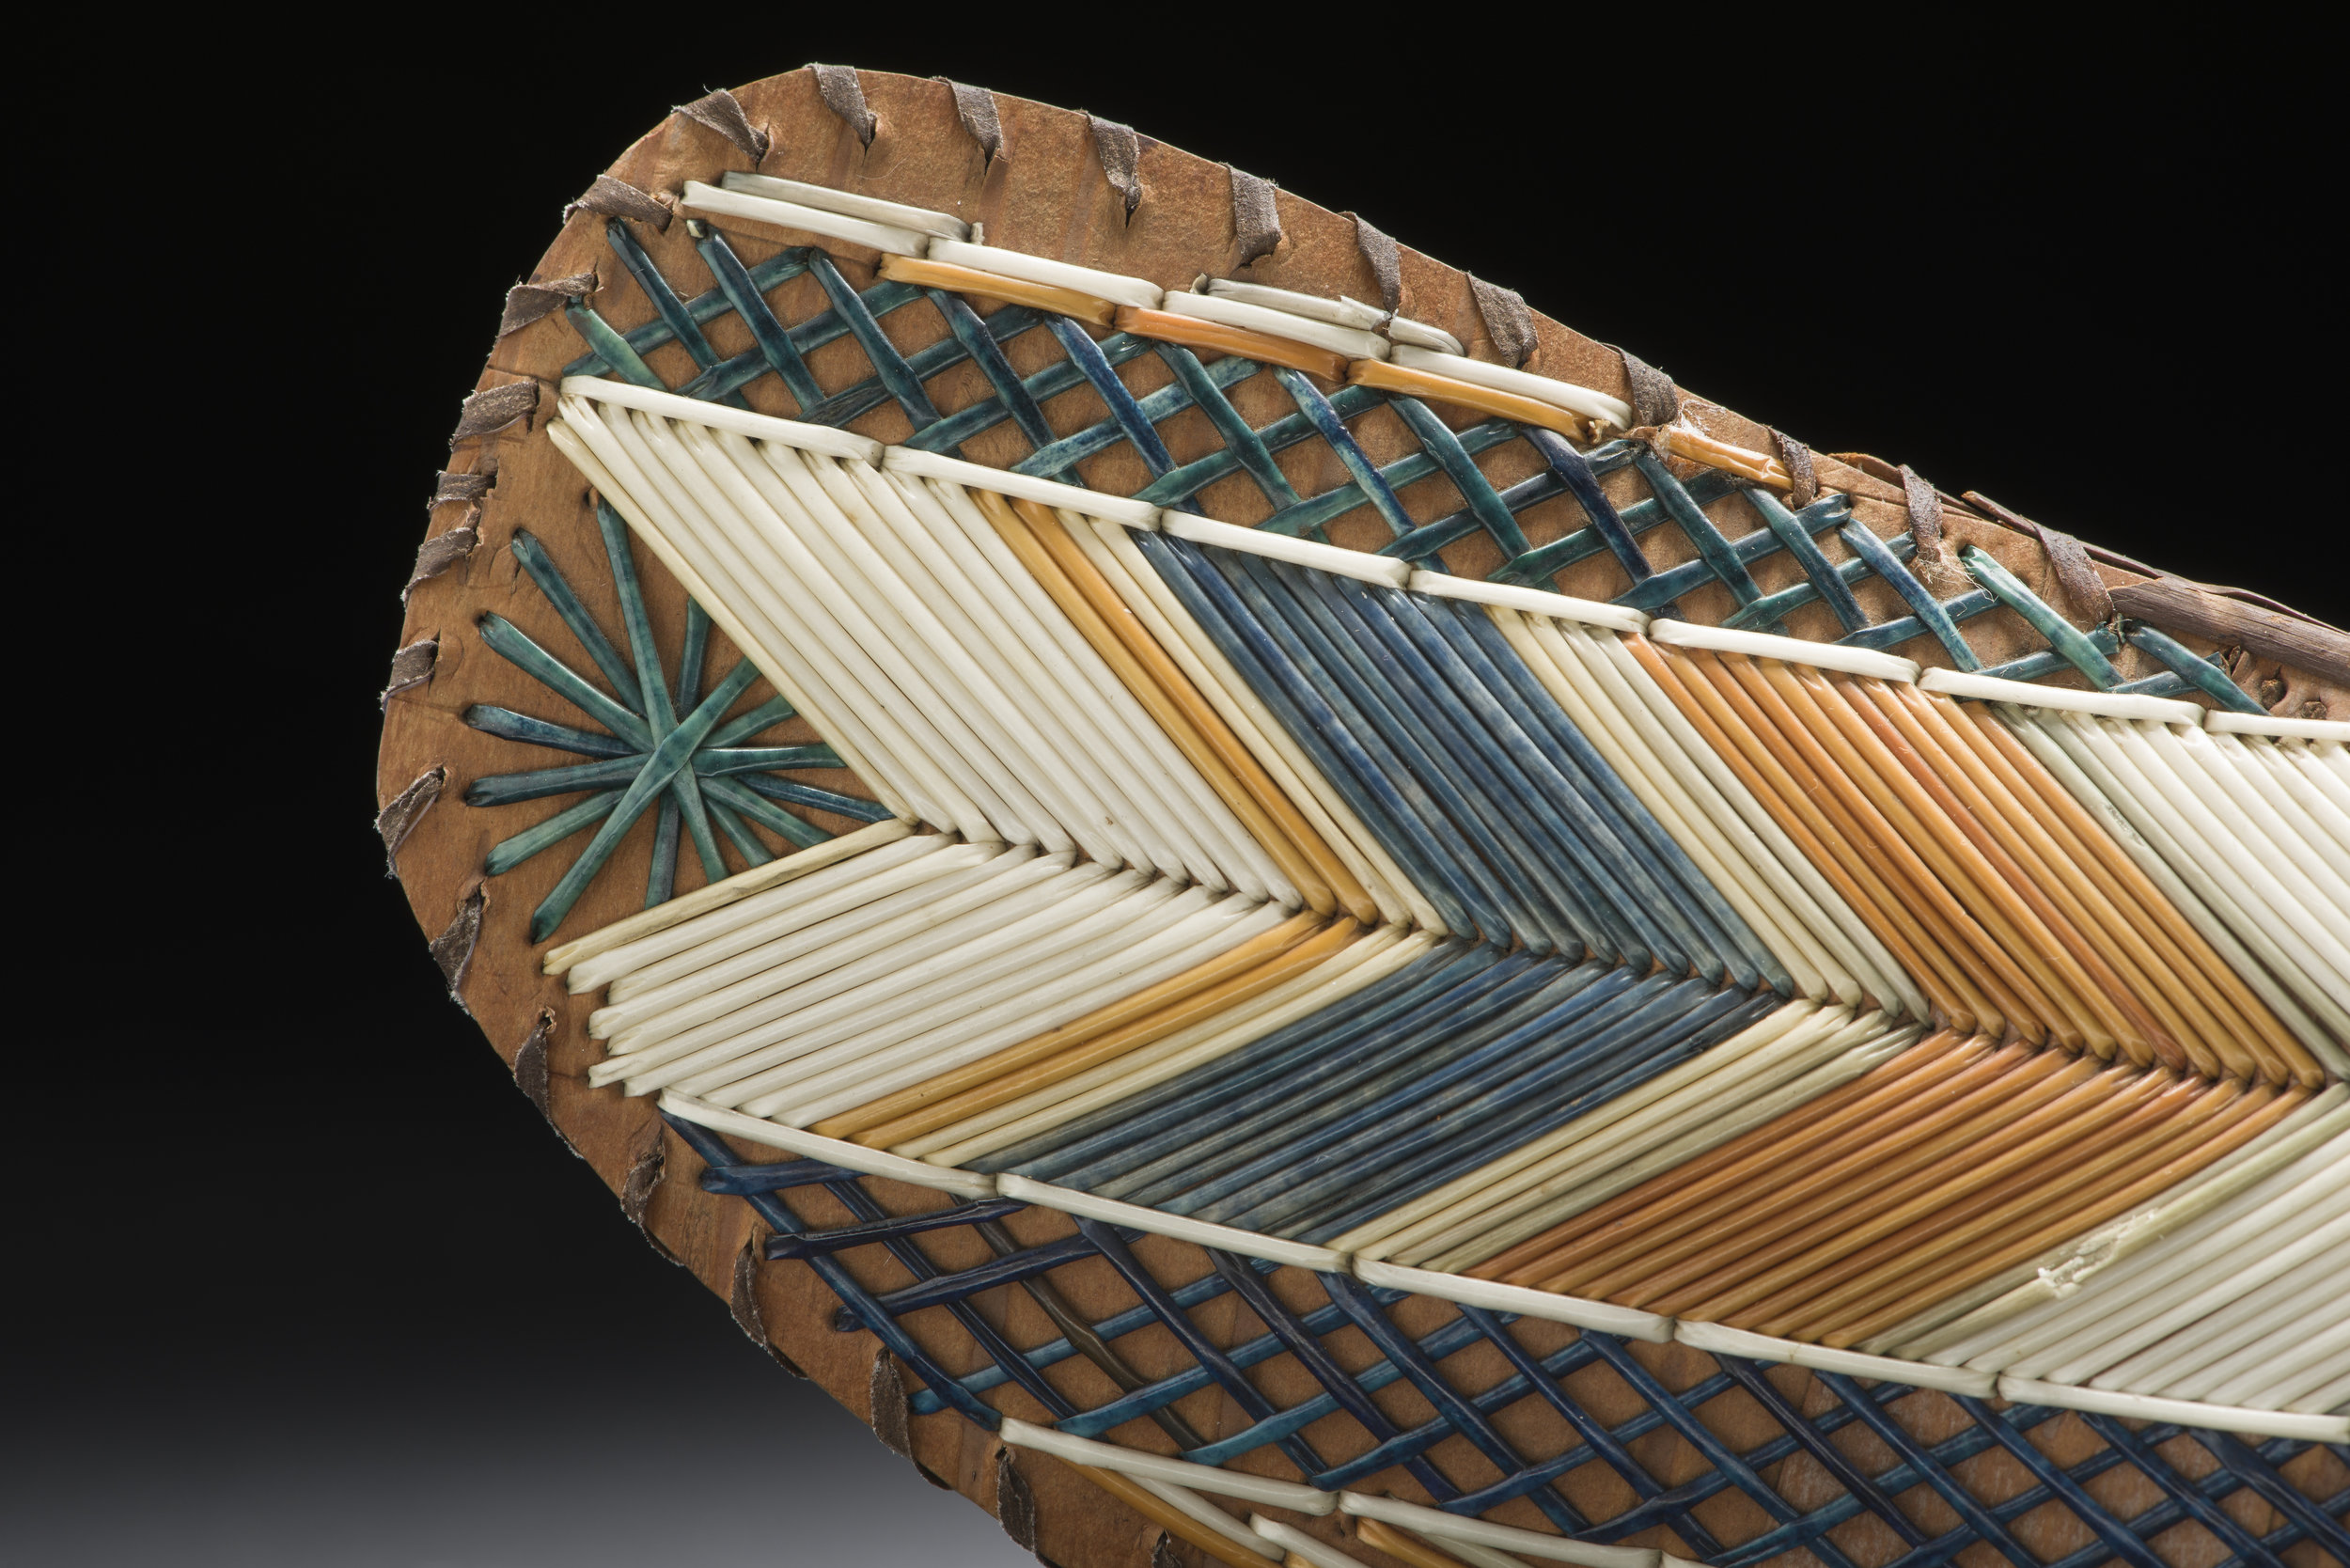 Model Canoe Peabody Essex Museum E4212_detail-01.jpg